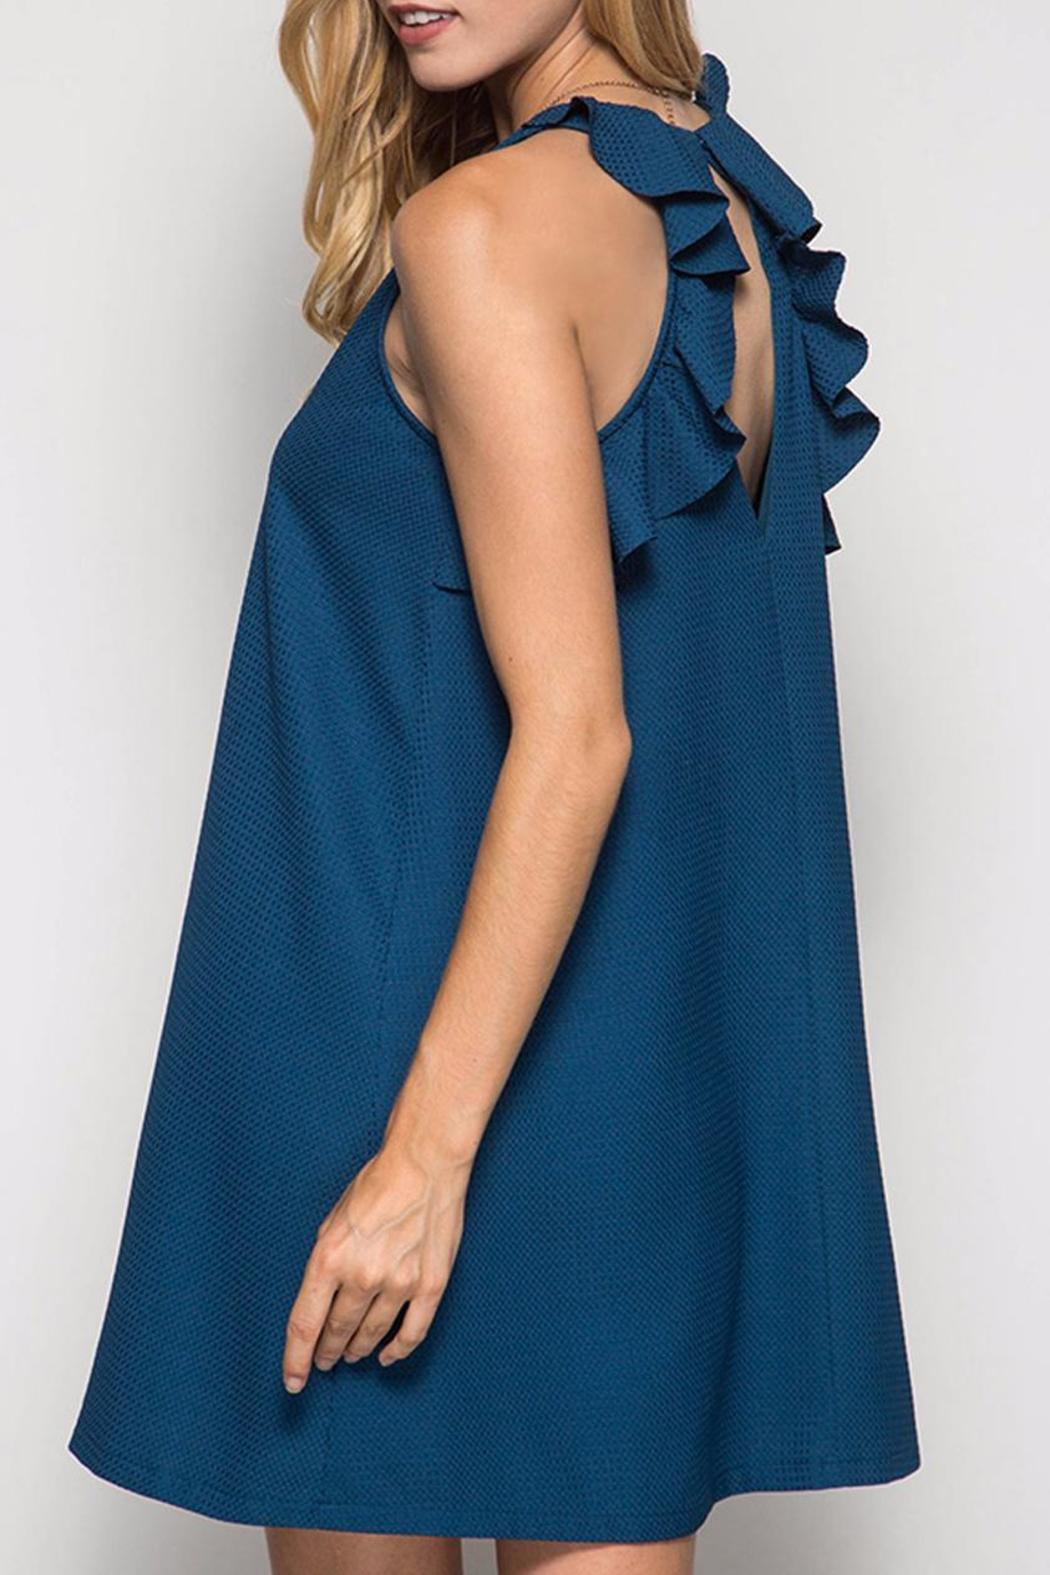 She + Sky Teal Swing Dress - Front Cropped Image